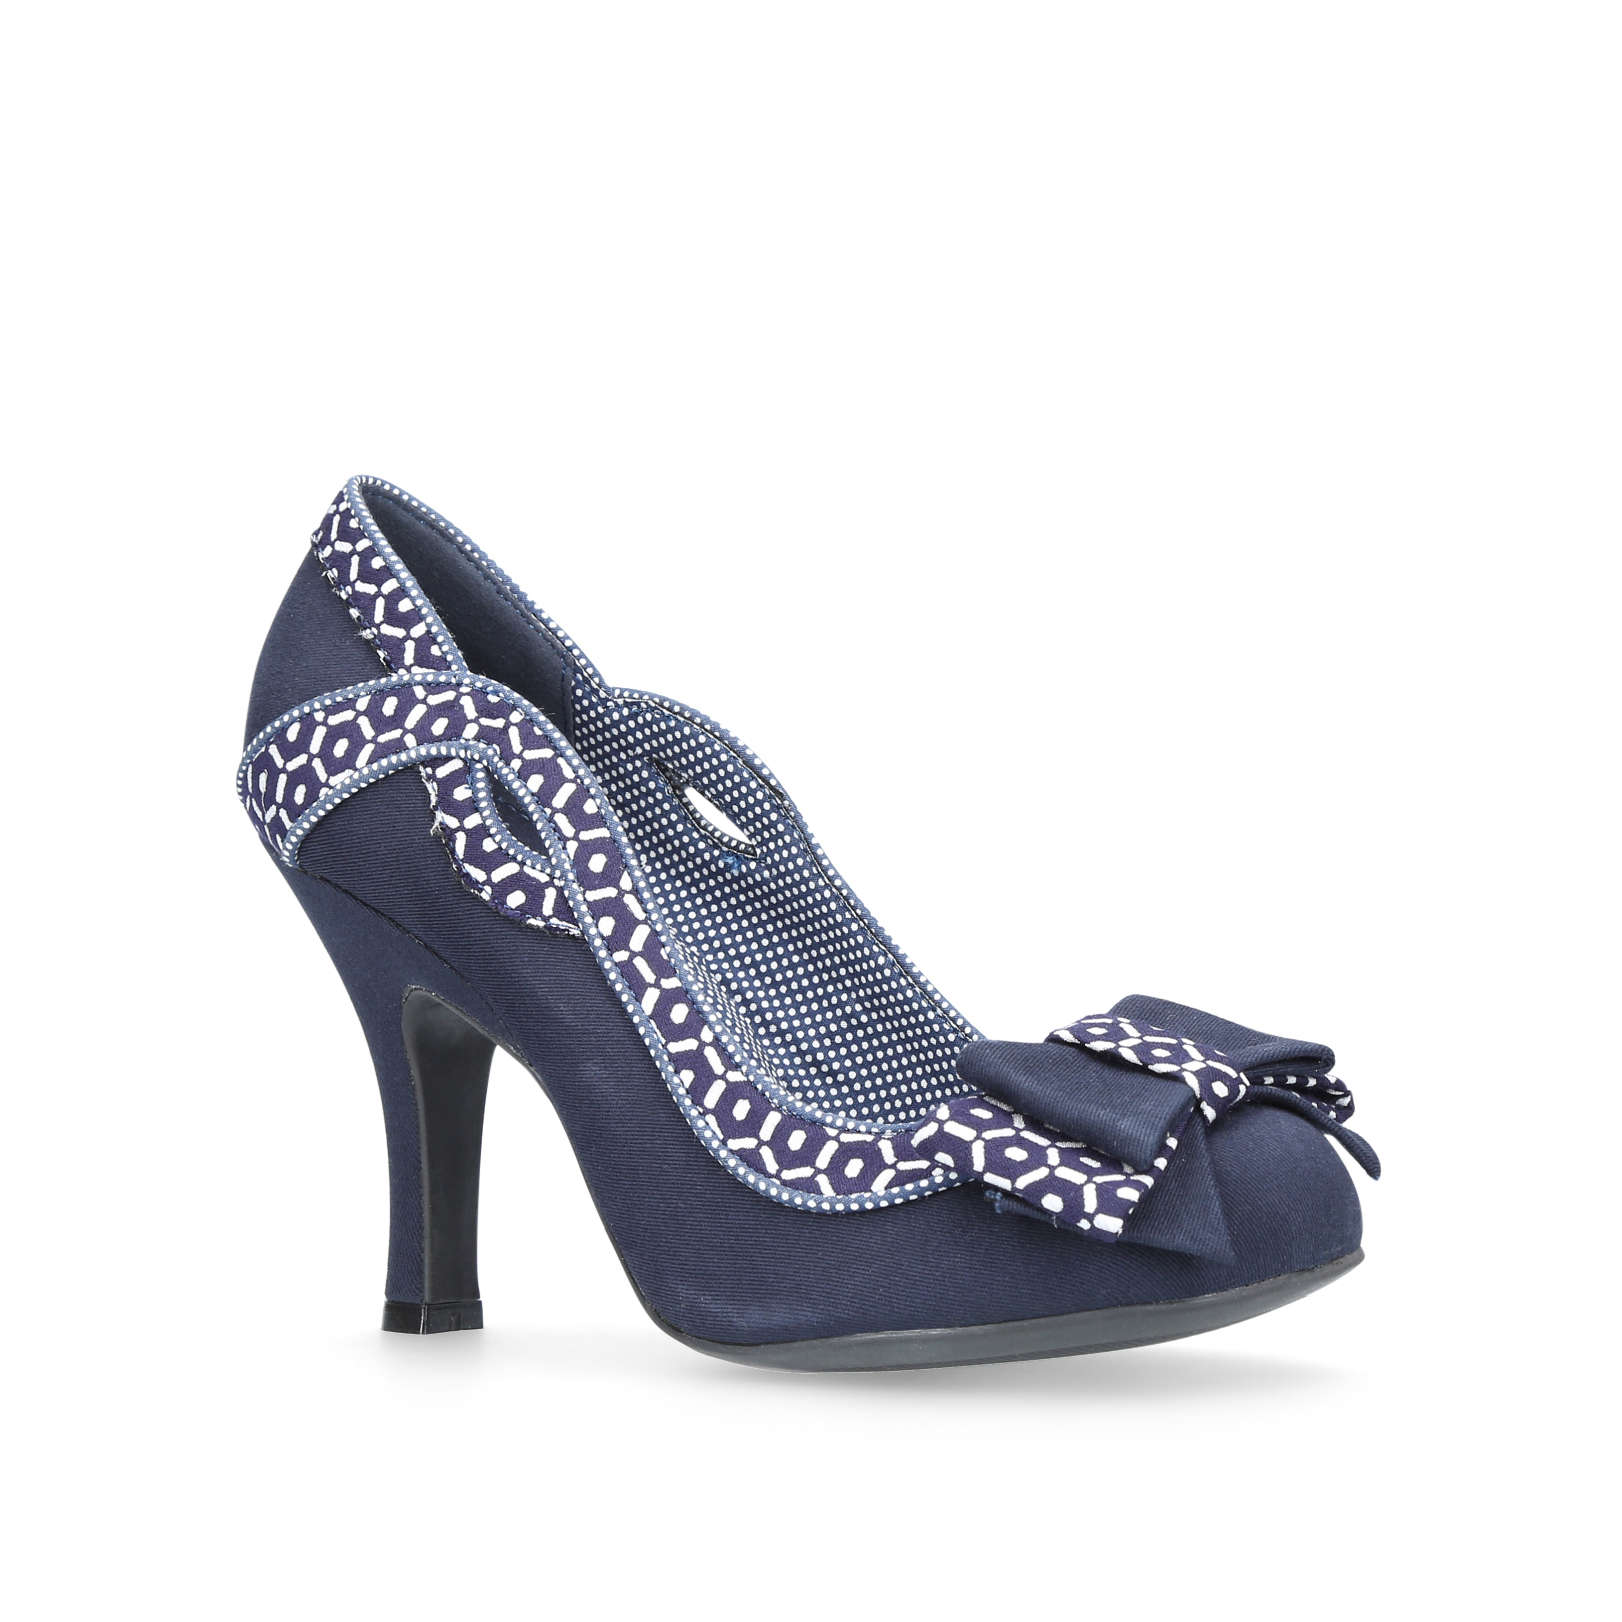 IVY Ruby Shoo Ivy Navy Fabric   Other Occasion Heels by RUBY SHOO a61865a3524b